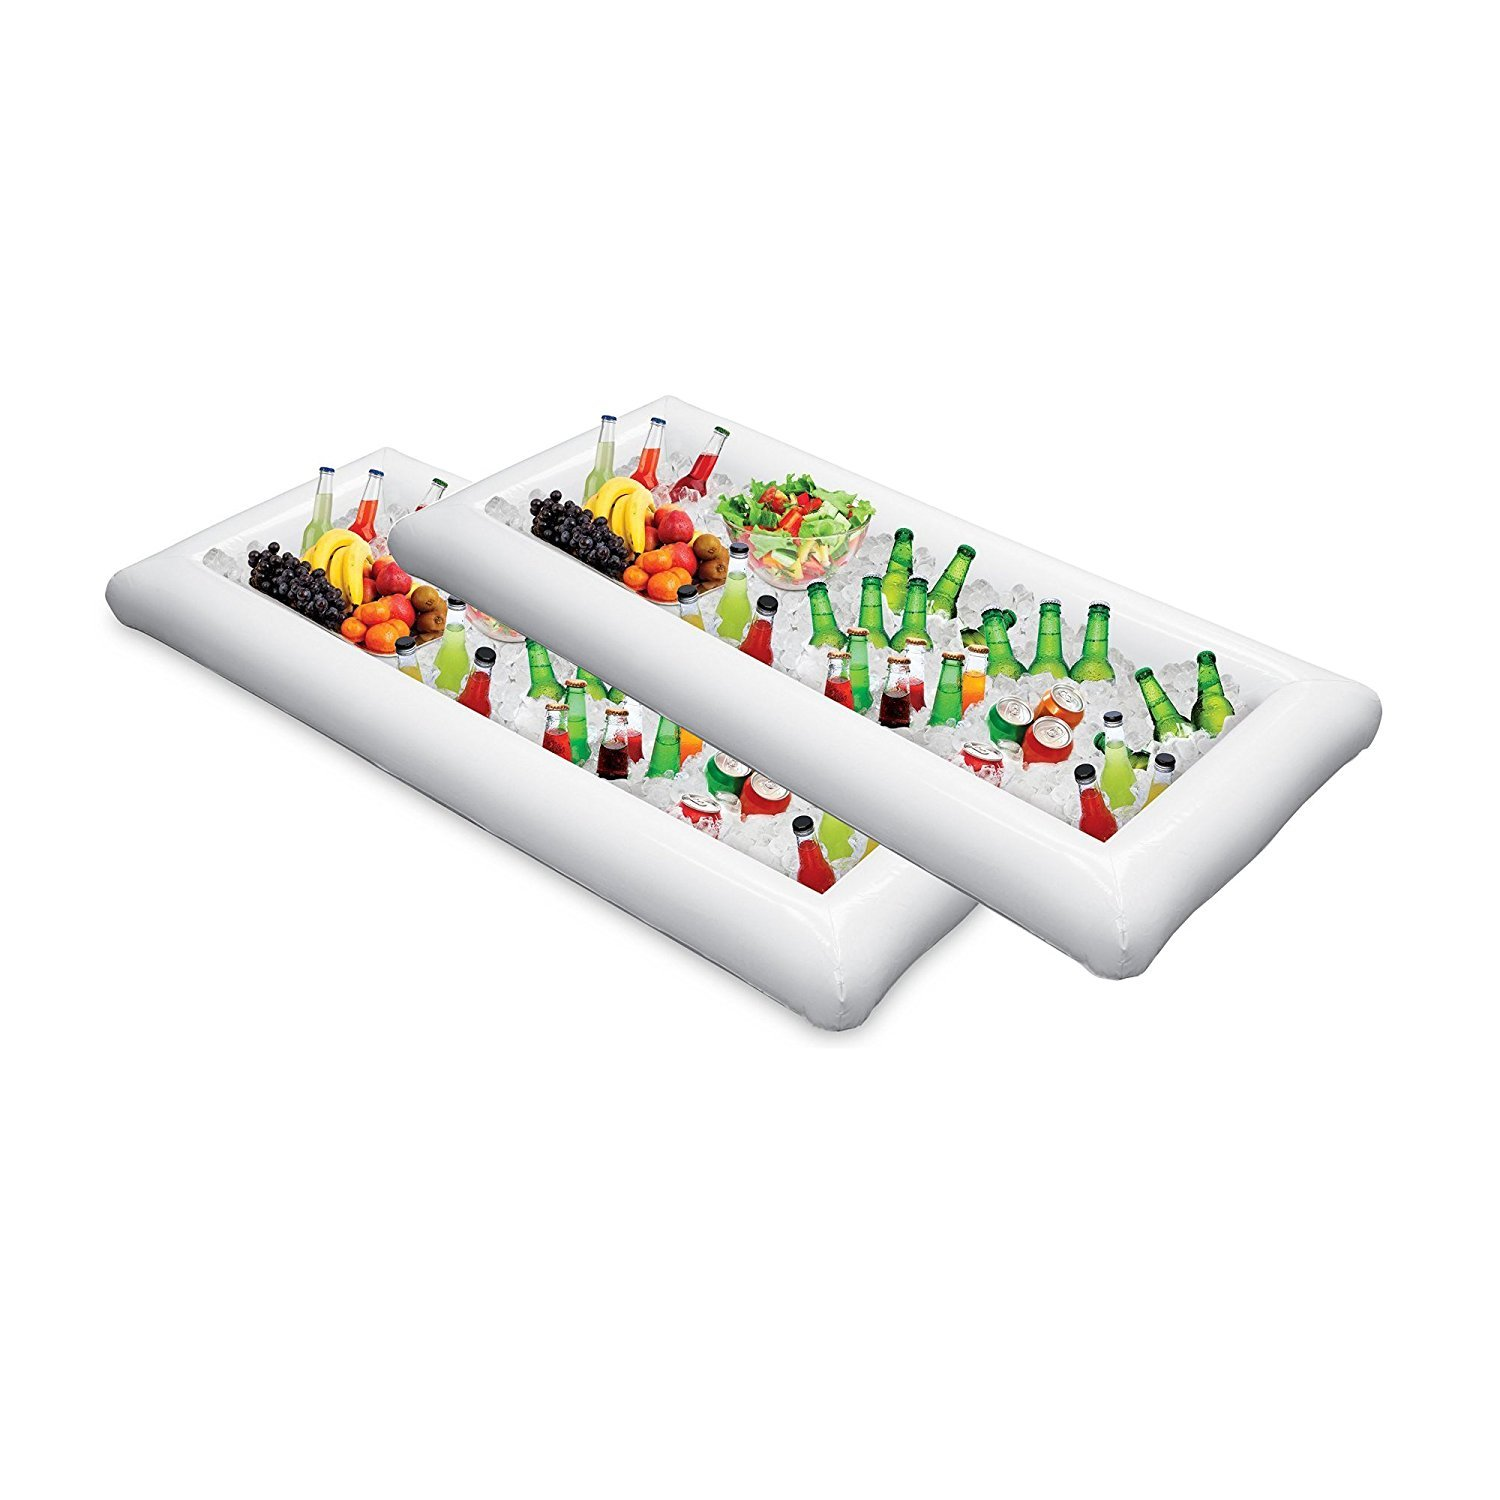 Inflatable Serving Bar Buffet Salad Food & Drink Tray,Portable Salad Bar for Football Parties, Pool Parties,BBQ,Tailgates and More